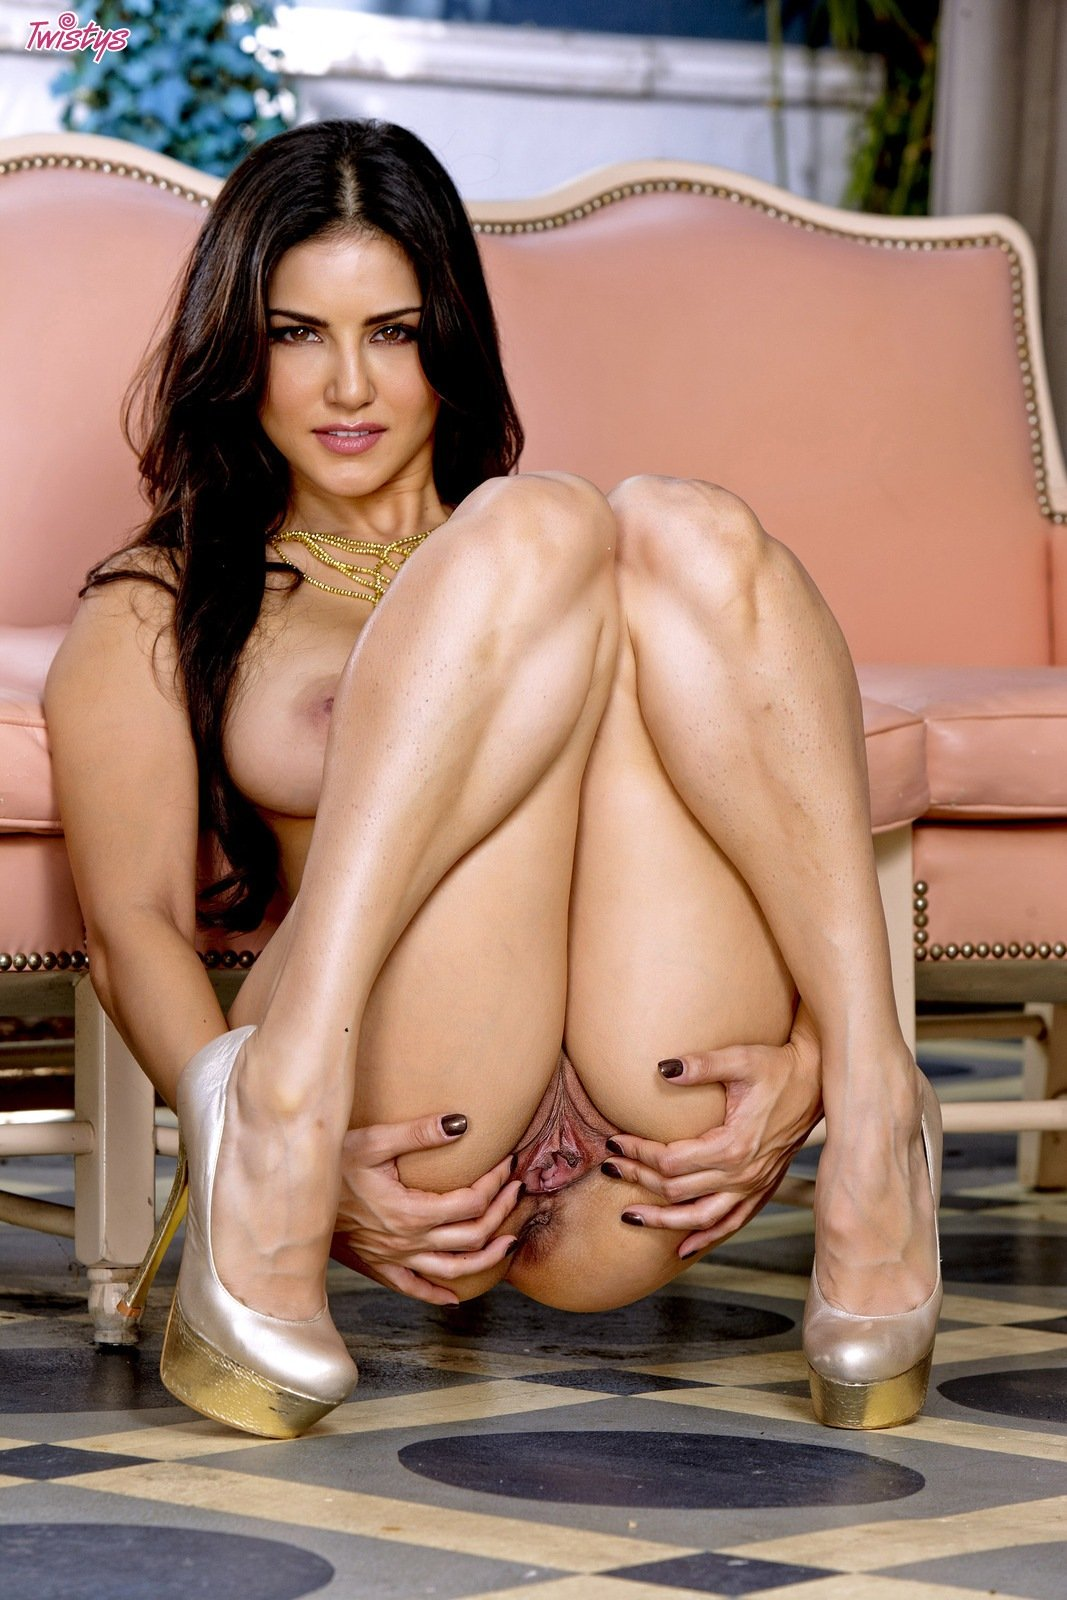 Sunny leone topless information not